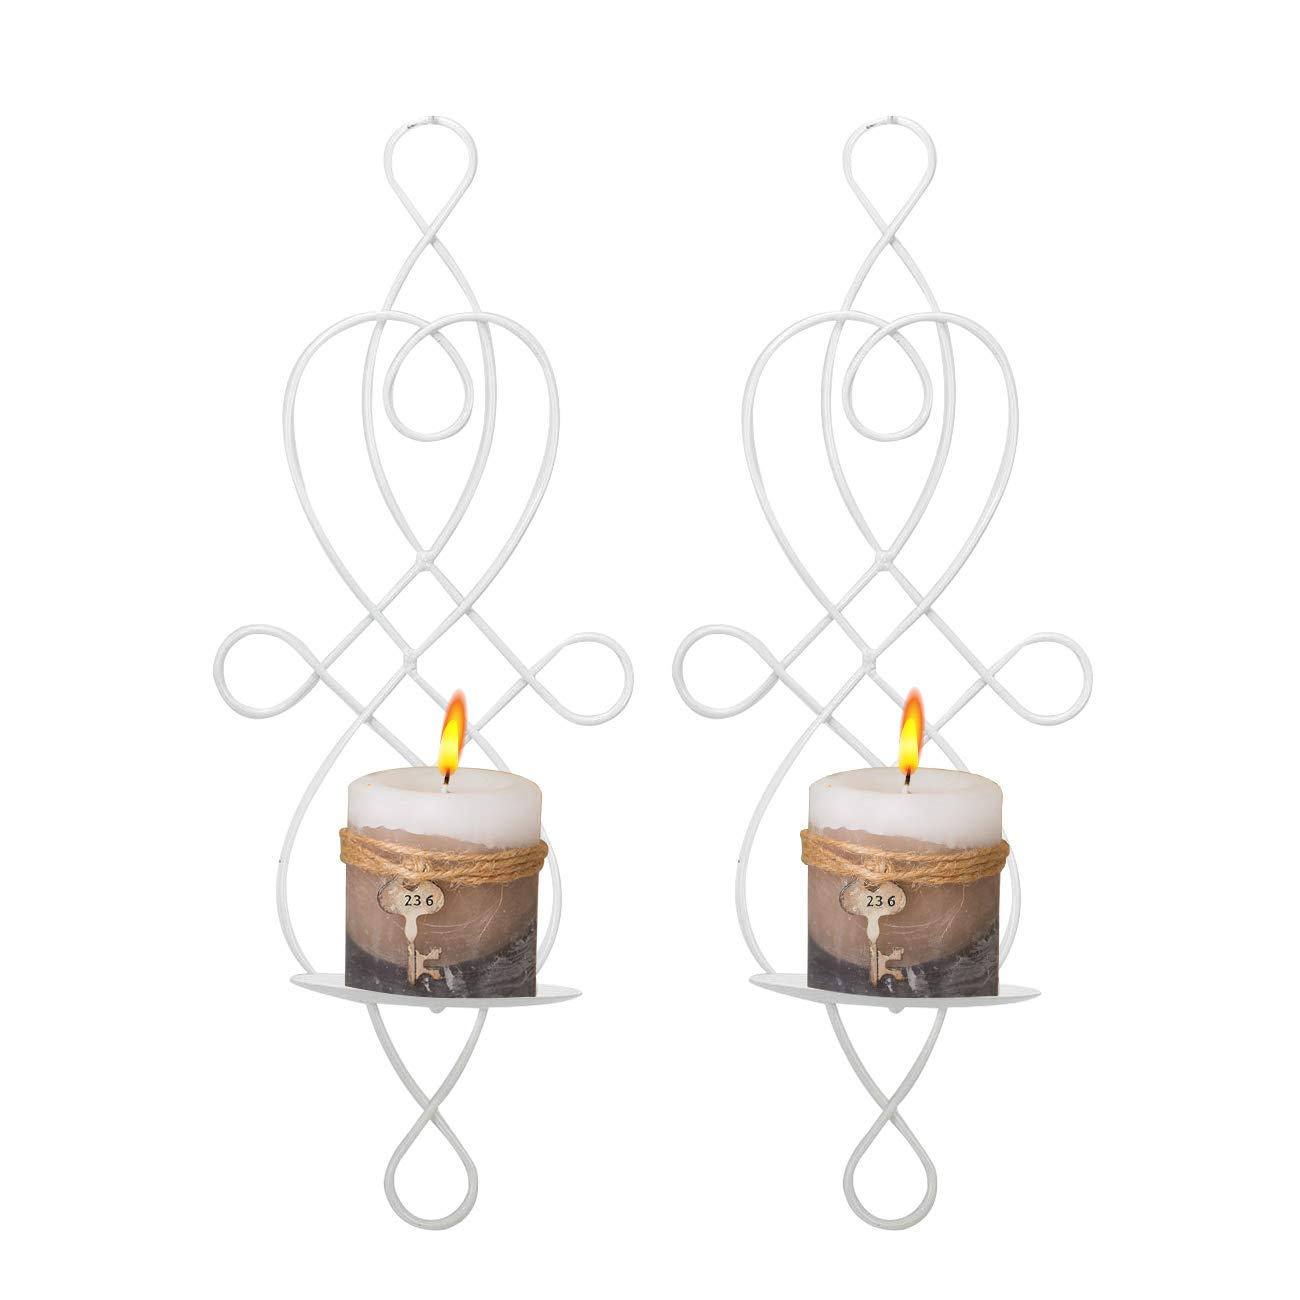 Wall Sconce Tea Light Candle Sconces Elegant Swirling Iron Hanging Wall Mounted Decorative Candle Holder for Home Decorations, Weddings, Events, 2 Piece, White